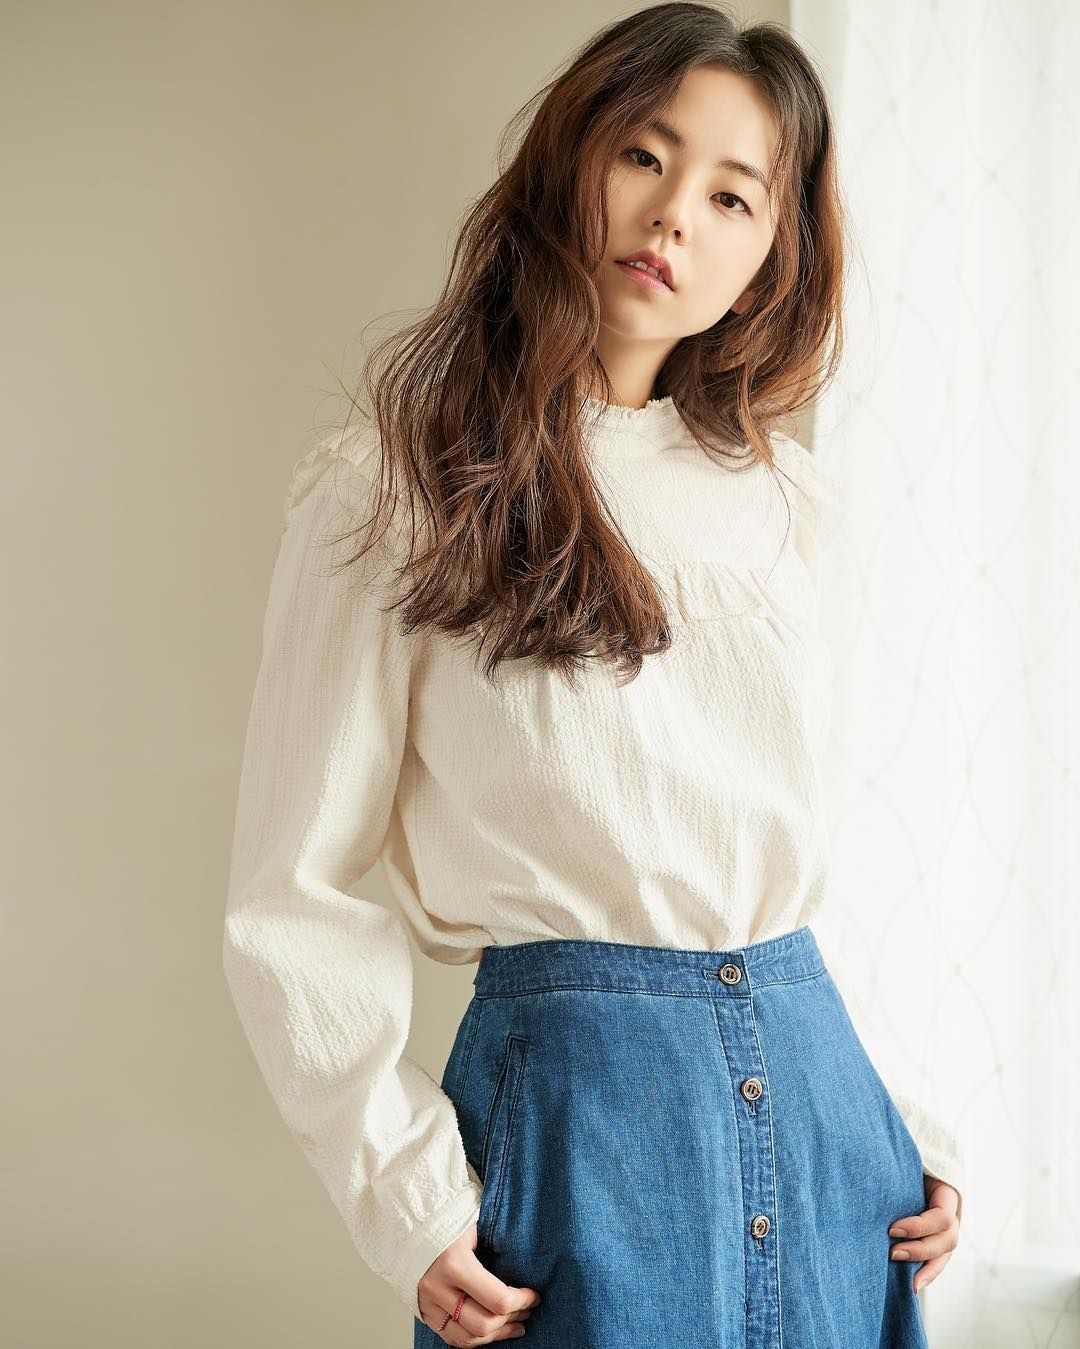 Image Discovered By Asel Amy98 Find Images And Videos On We Heart It The App To Get Lost In What You Love In 2020 Sohee Wonder Girl Korean Fashion Wonder Girl Kpop